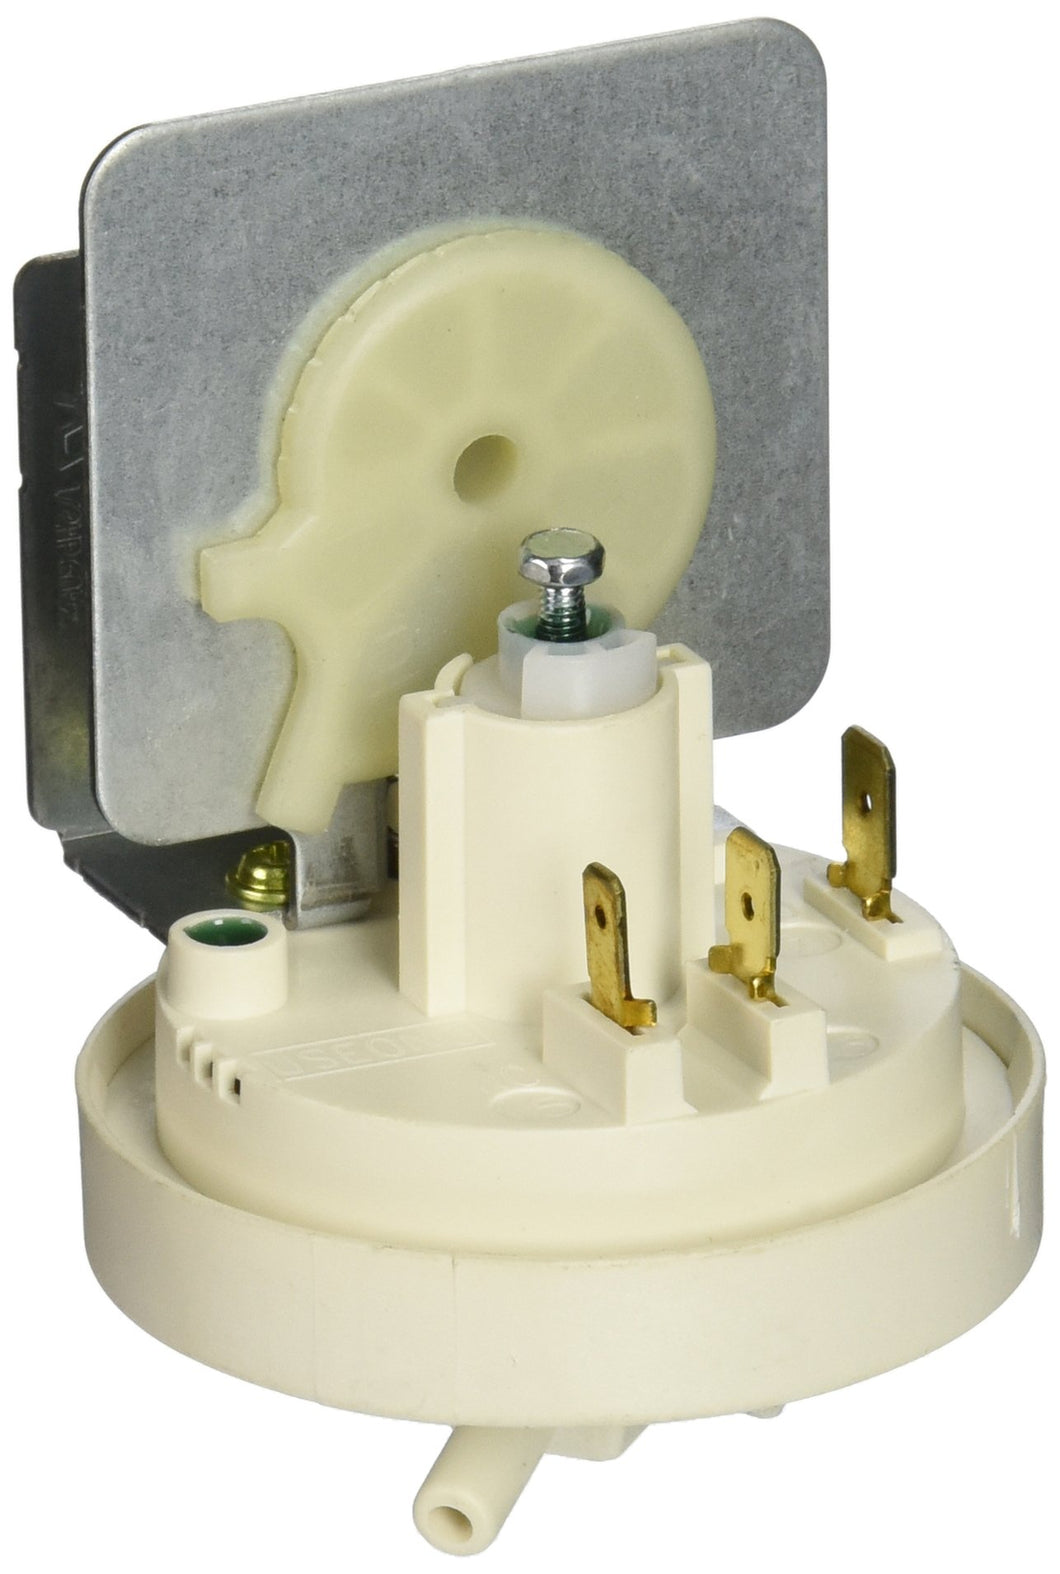 General Electric WH12X10069 Washing Machine Pressure Switch